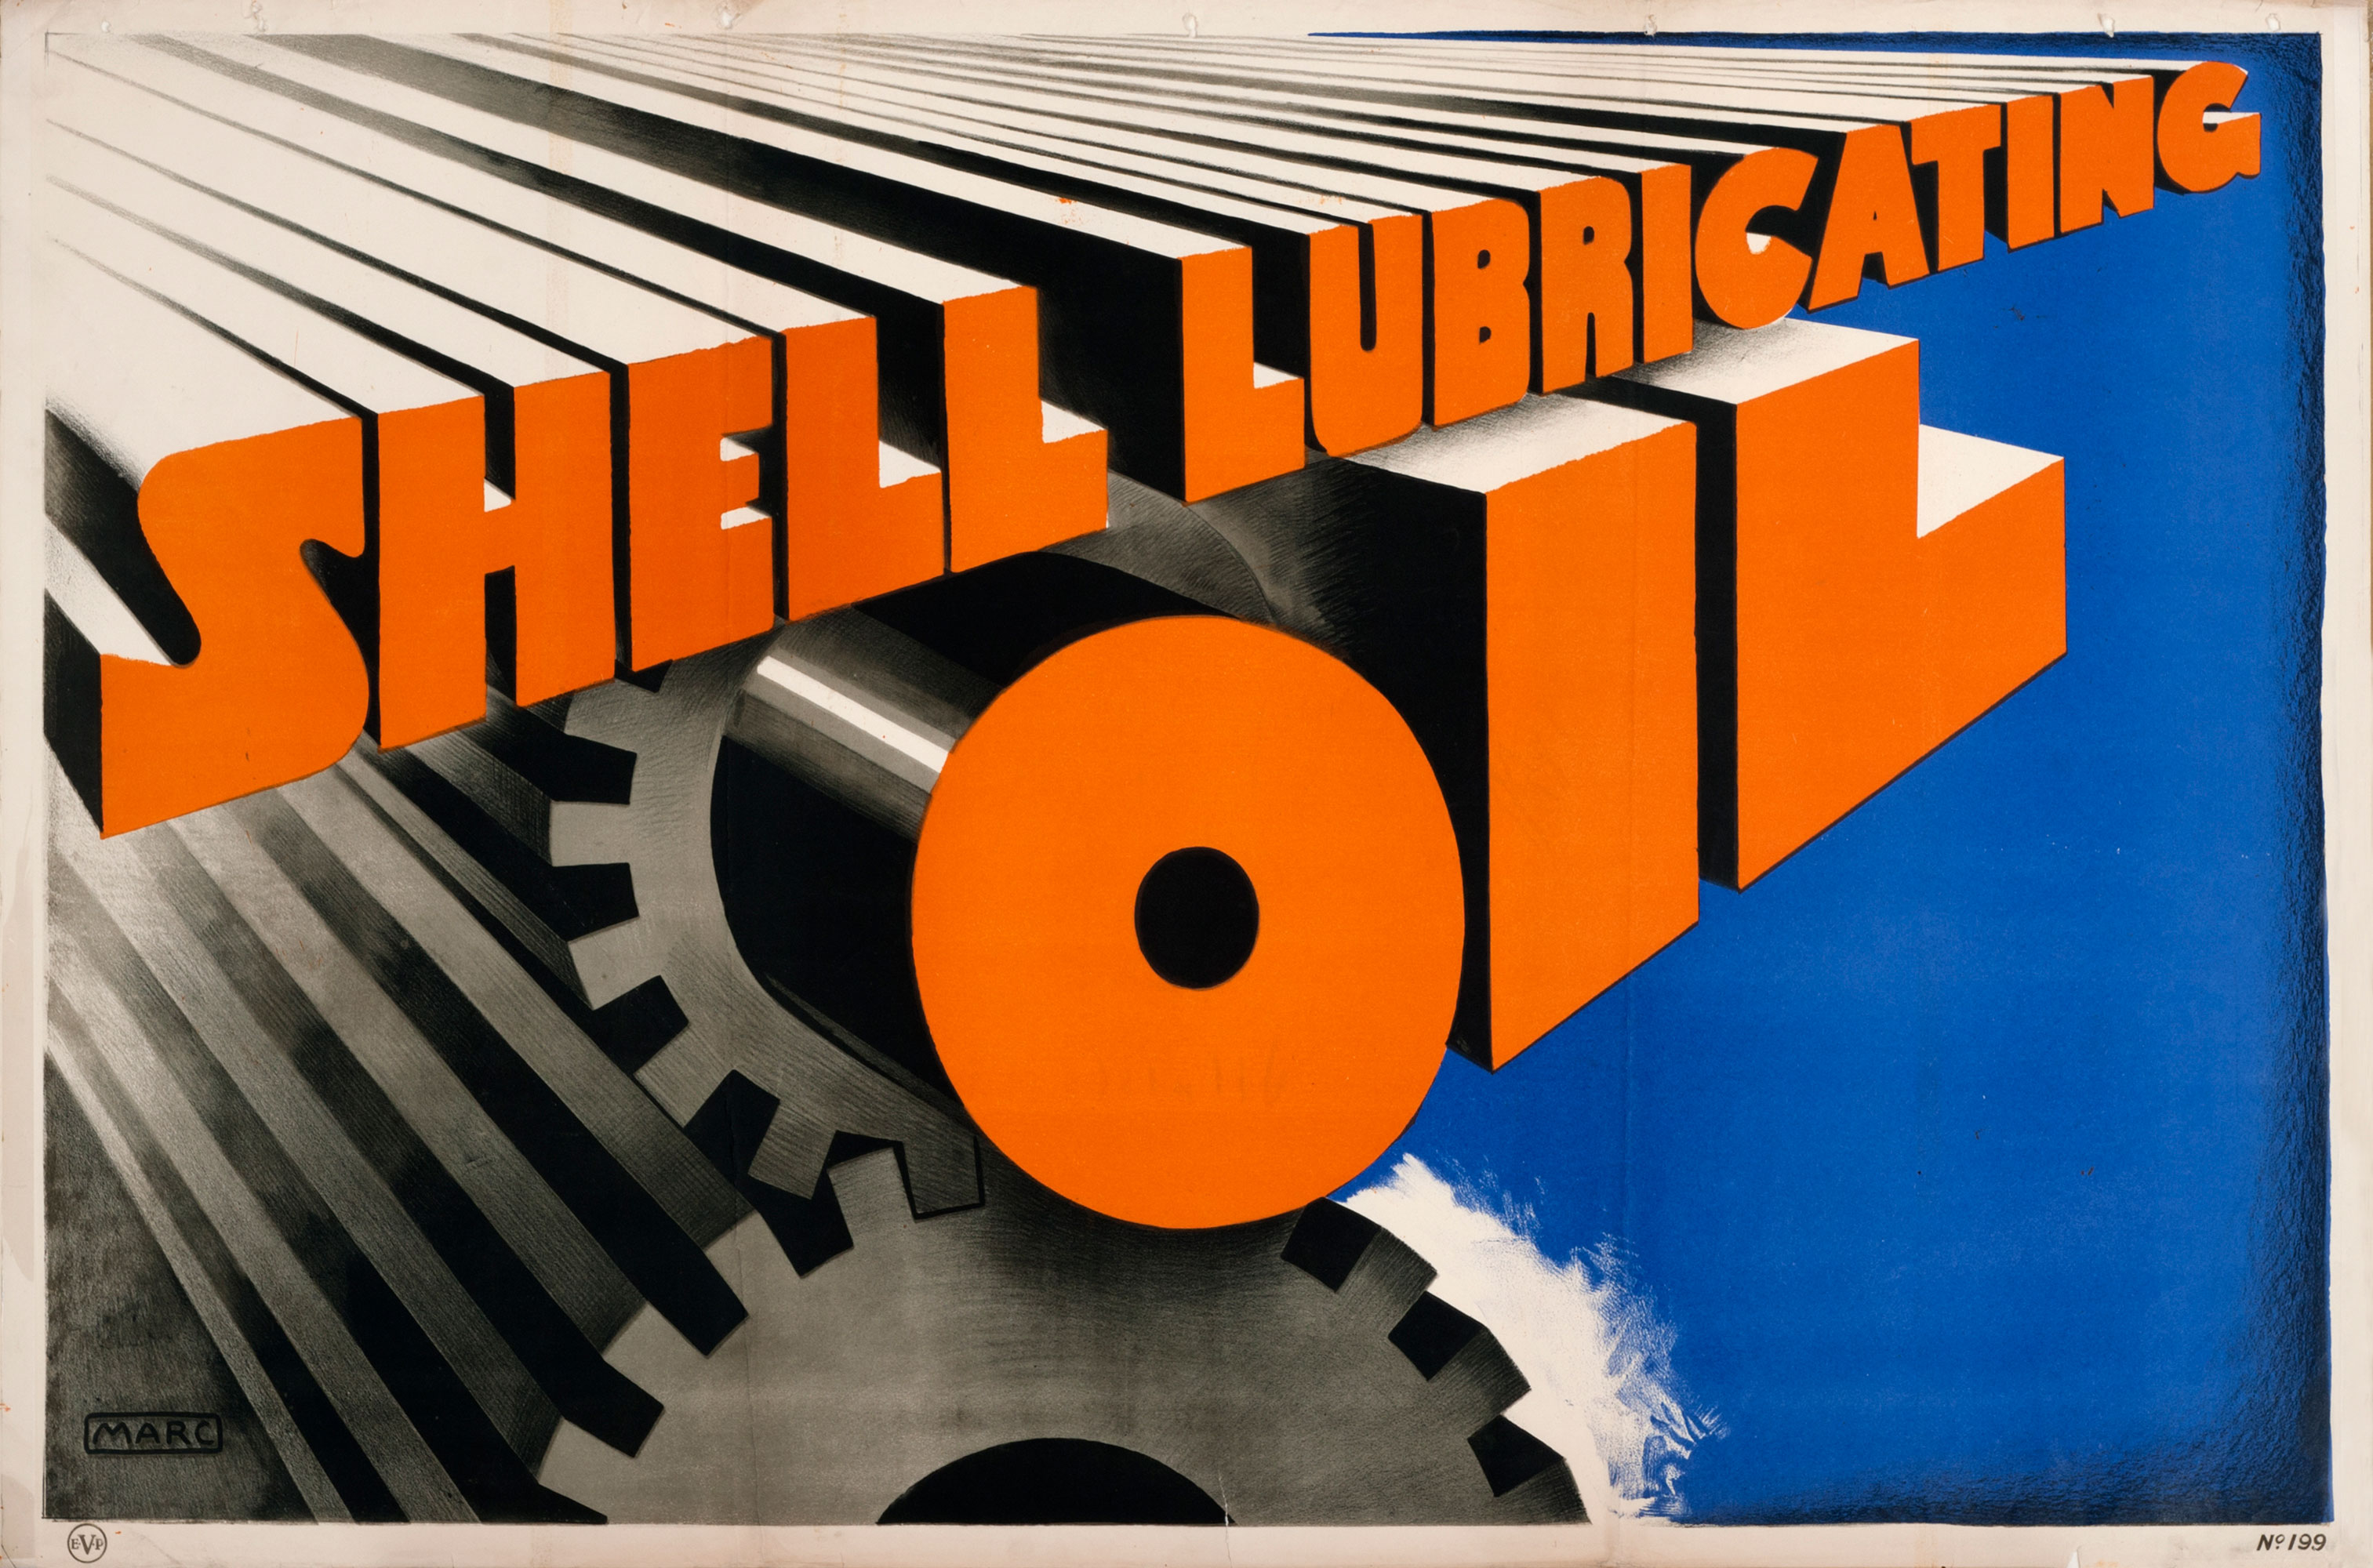 """Shell poster number 199, Shell lubricating oil by Marc. Painting shows the words """"Shell Lubricating Oil"""" in orange on a background of cogs."""